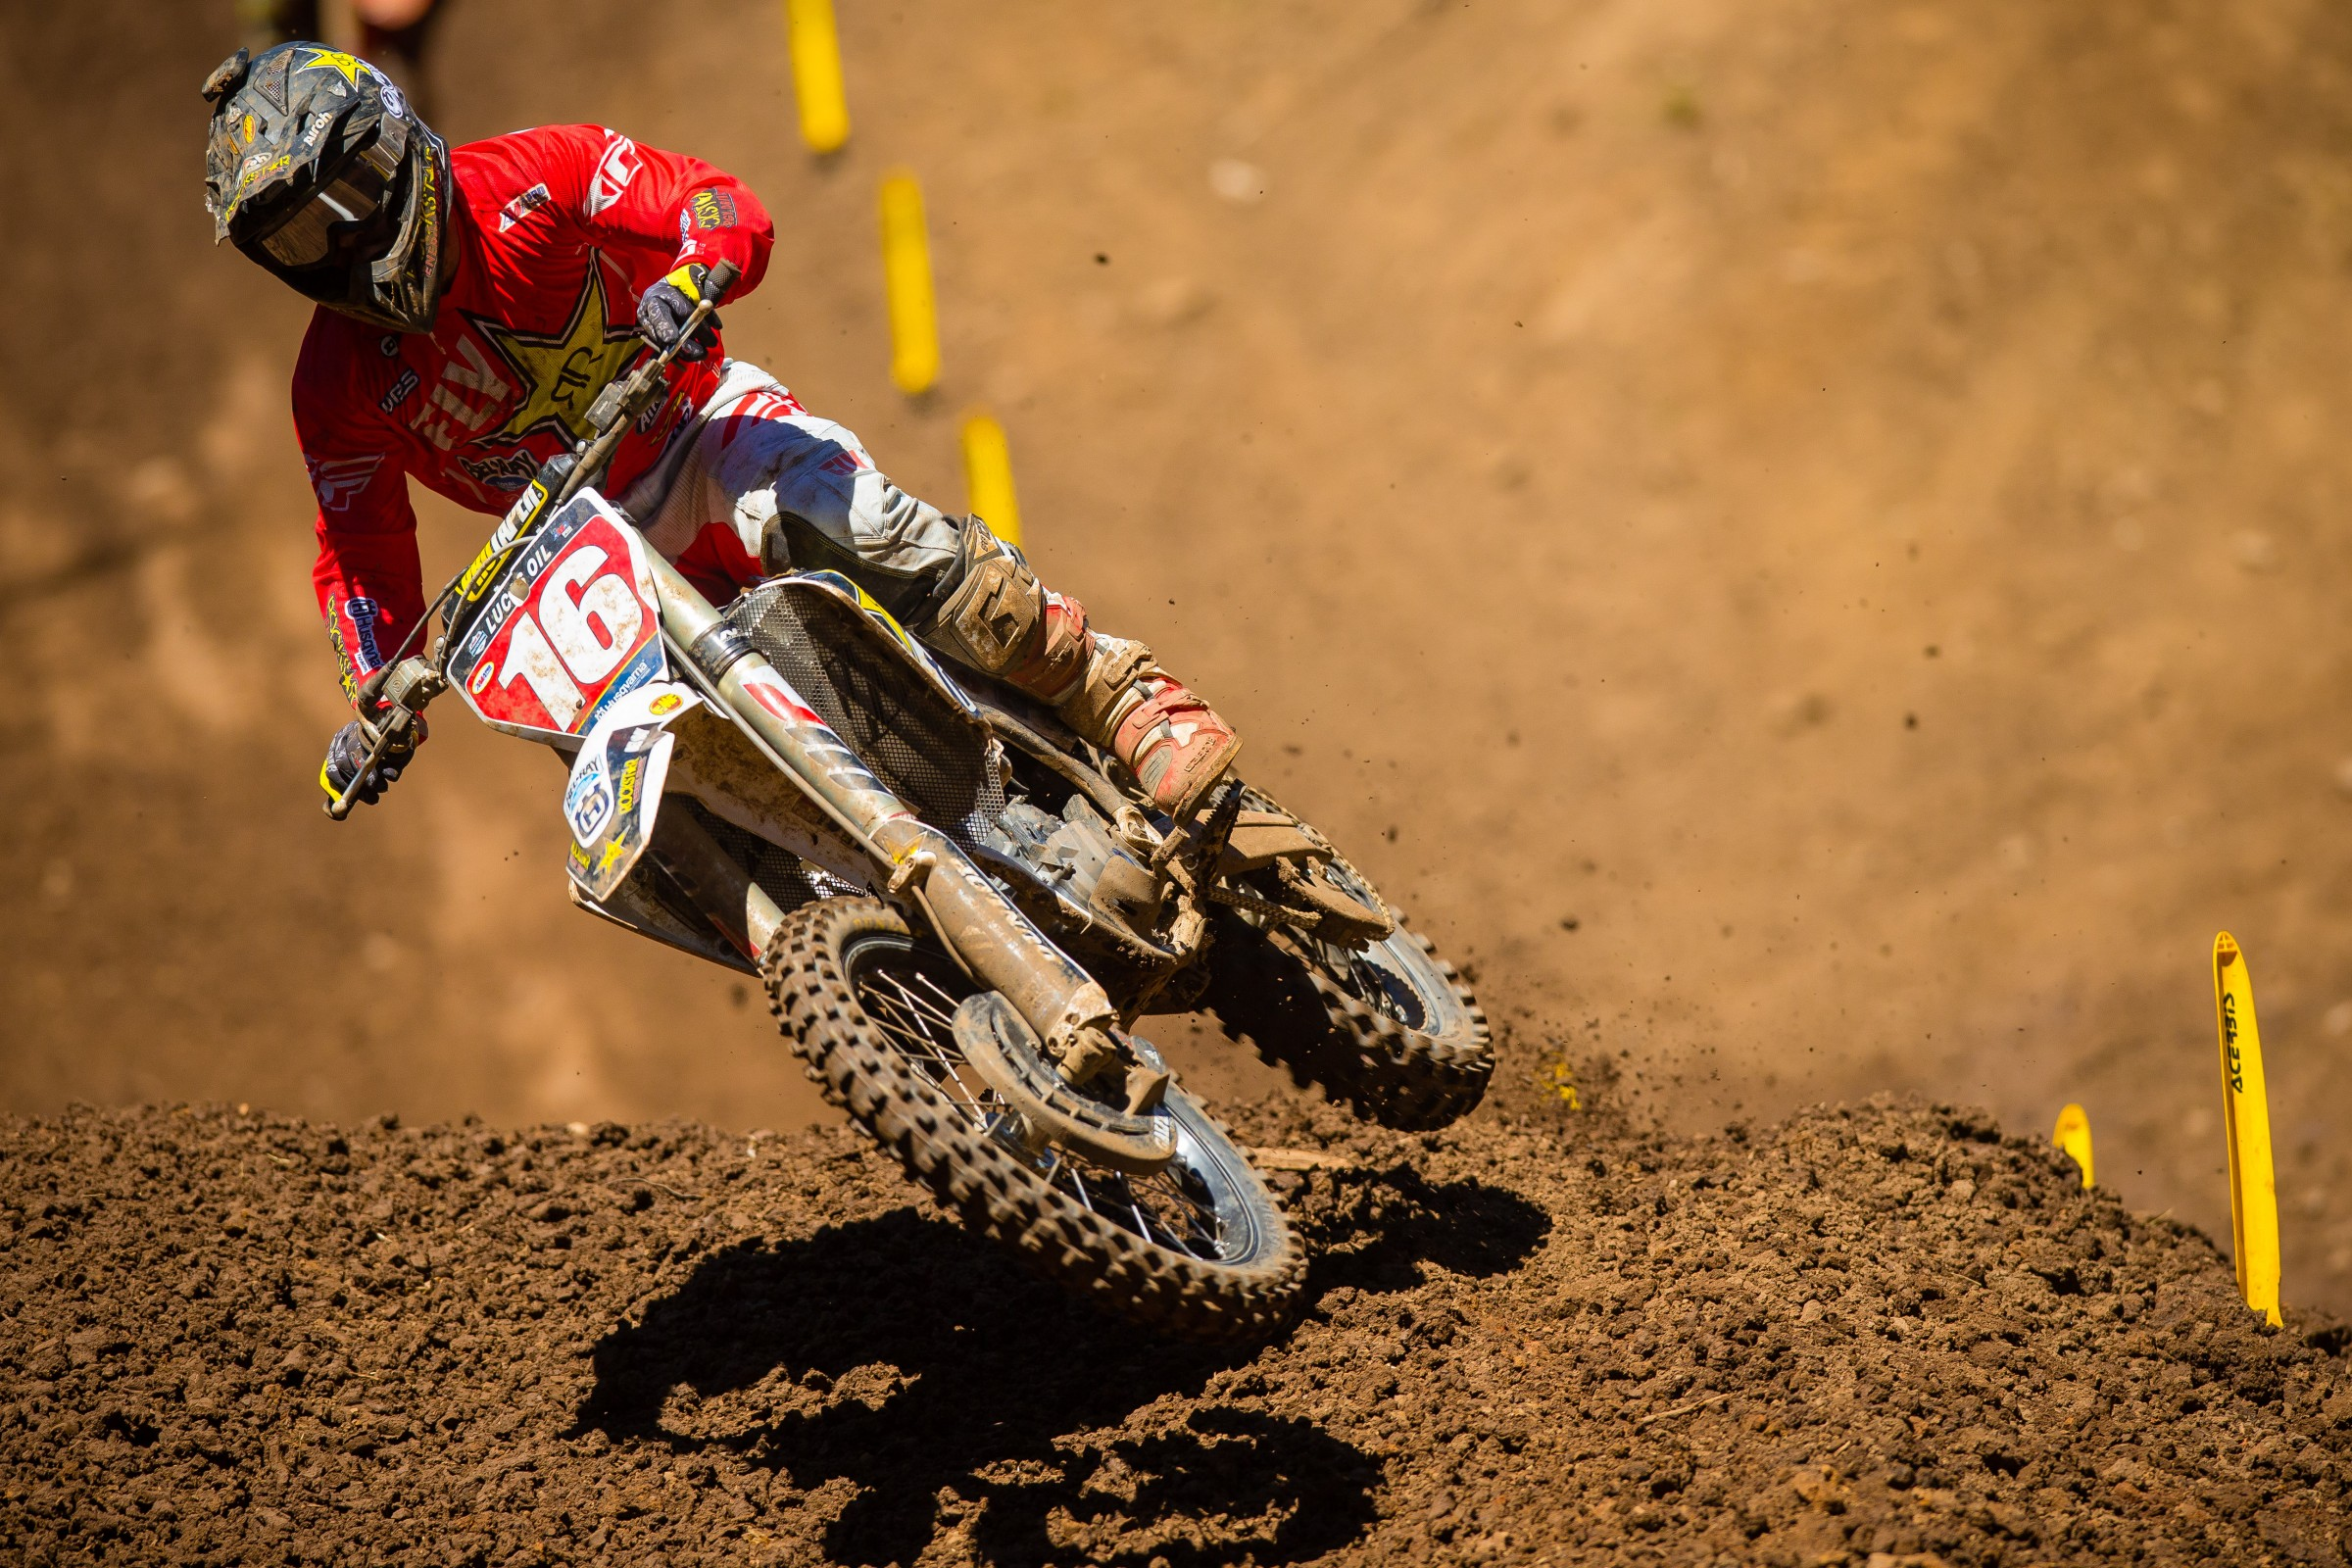 Osborne needs to gain 26 points on J-Mart at Unadilla if he wants to clinch the championship.